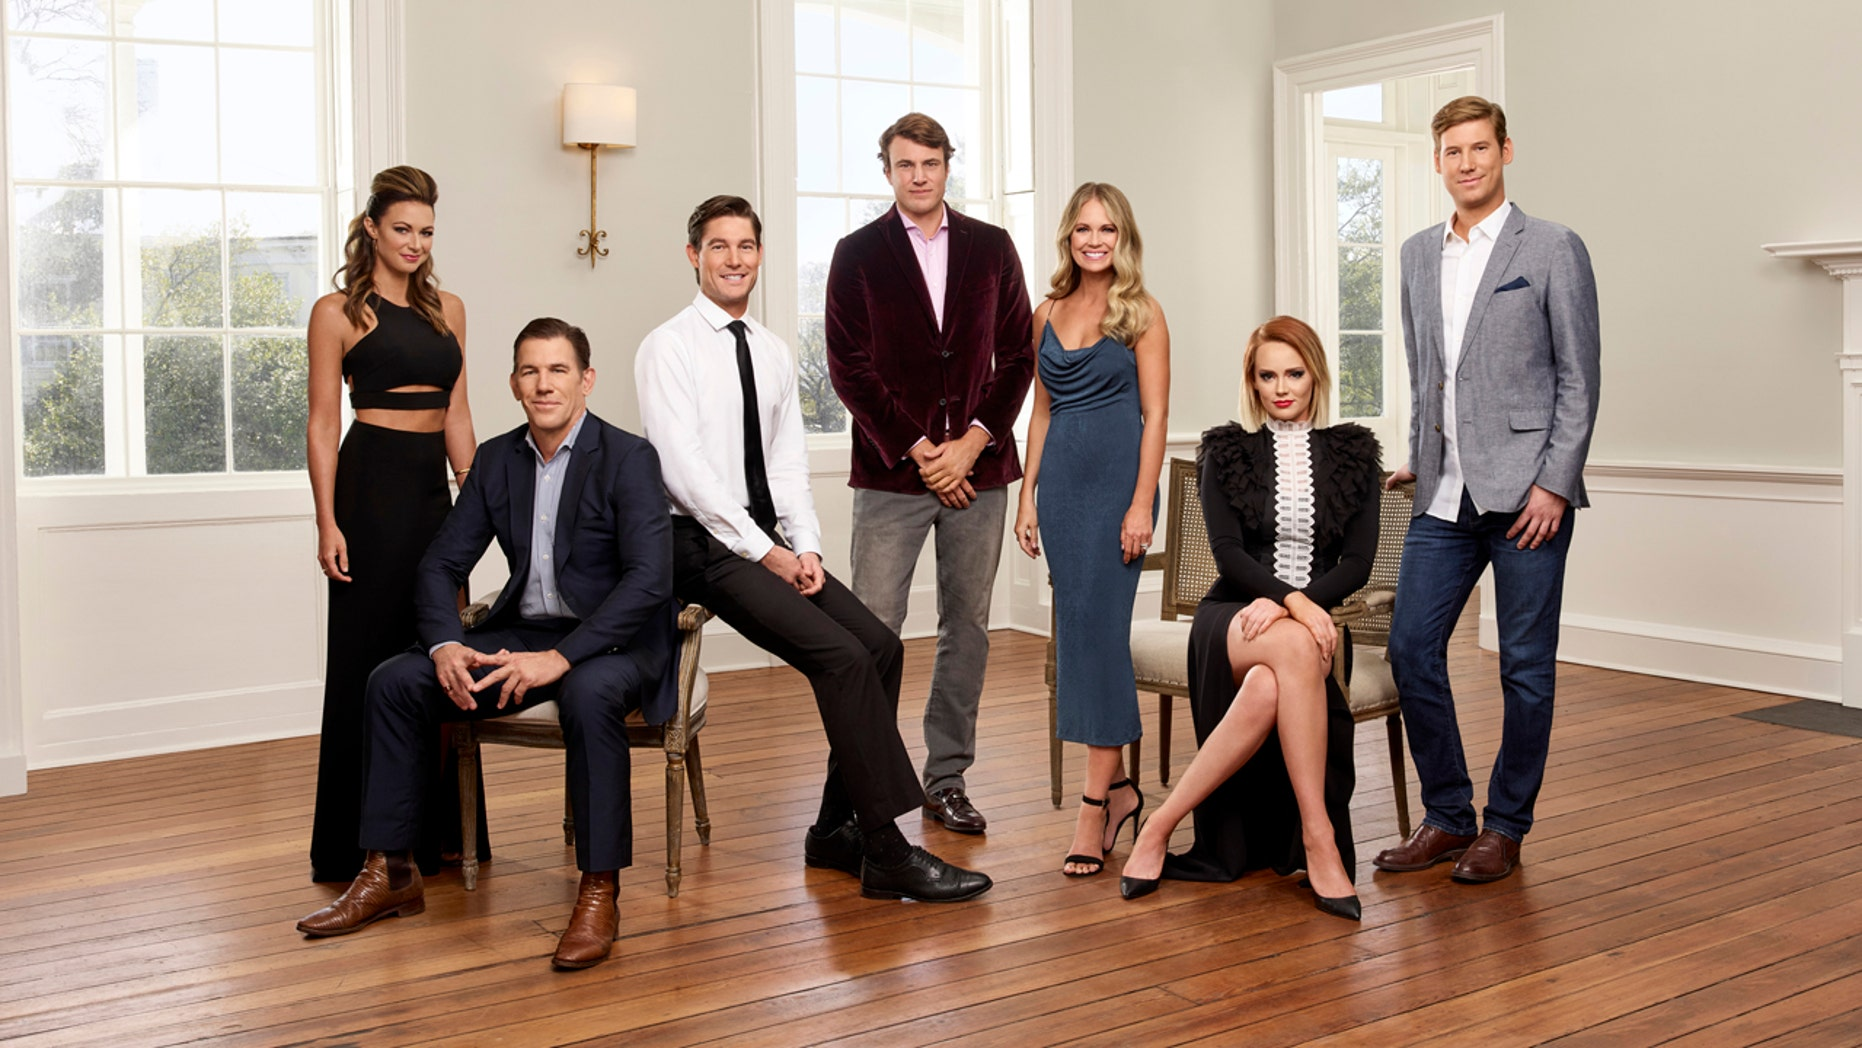 "The cast of Bravo series 'Southern Charm"" speaks out about cast member Thomas Ravenel's sexual assault allegations on the show's reunion special."